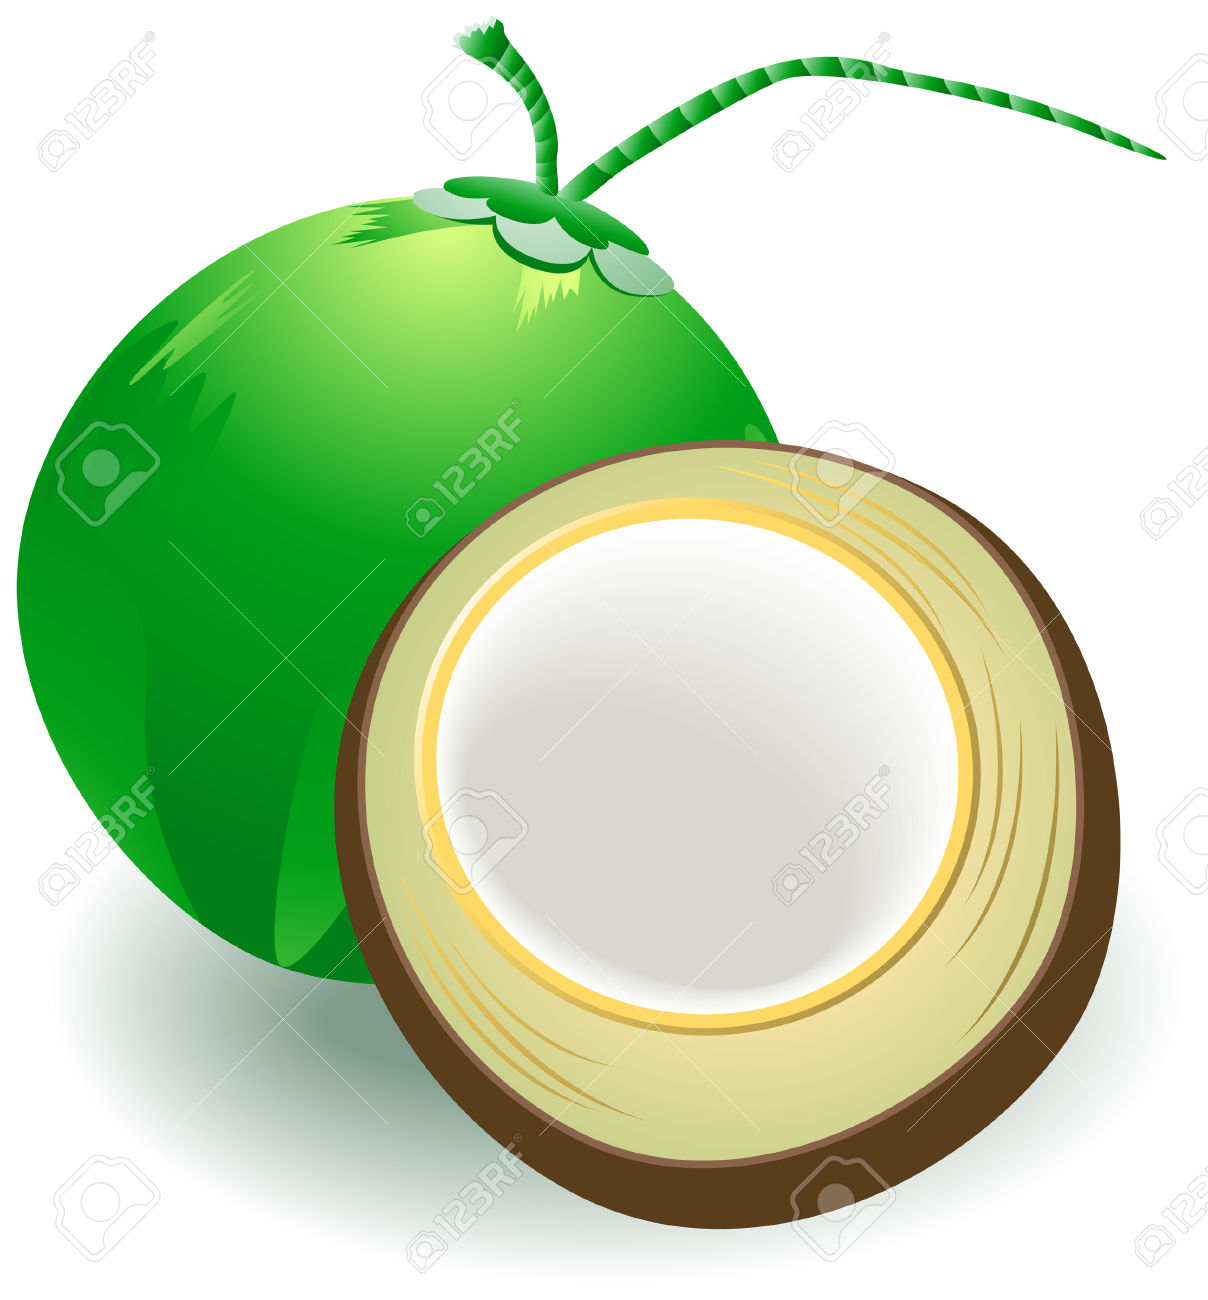 Coconut cliparts graphic royalty free download Coconut Clipart | Free download best Coconut Clipart on ClipArtMag.com graphic royalty free download